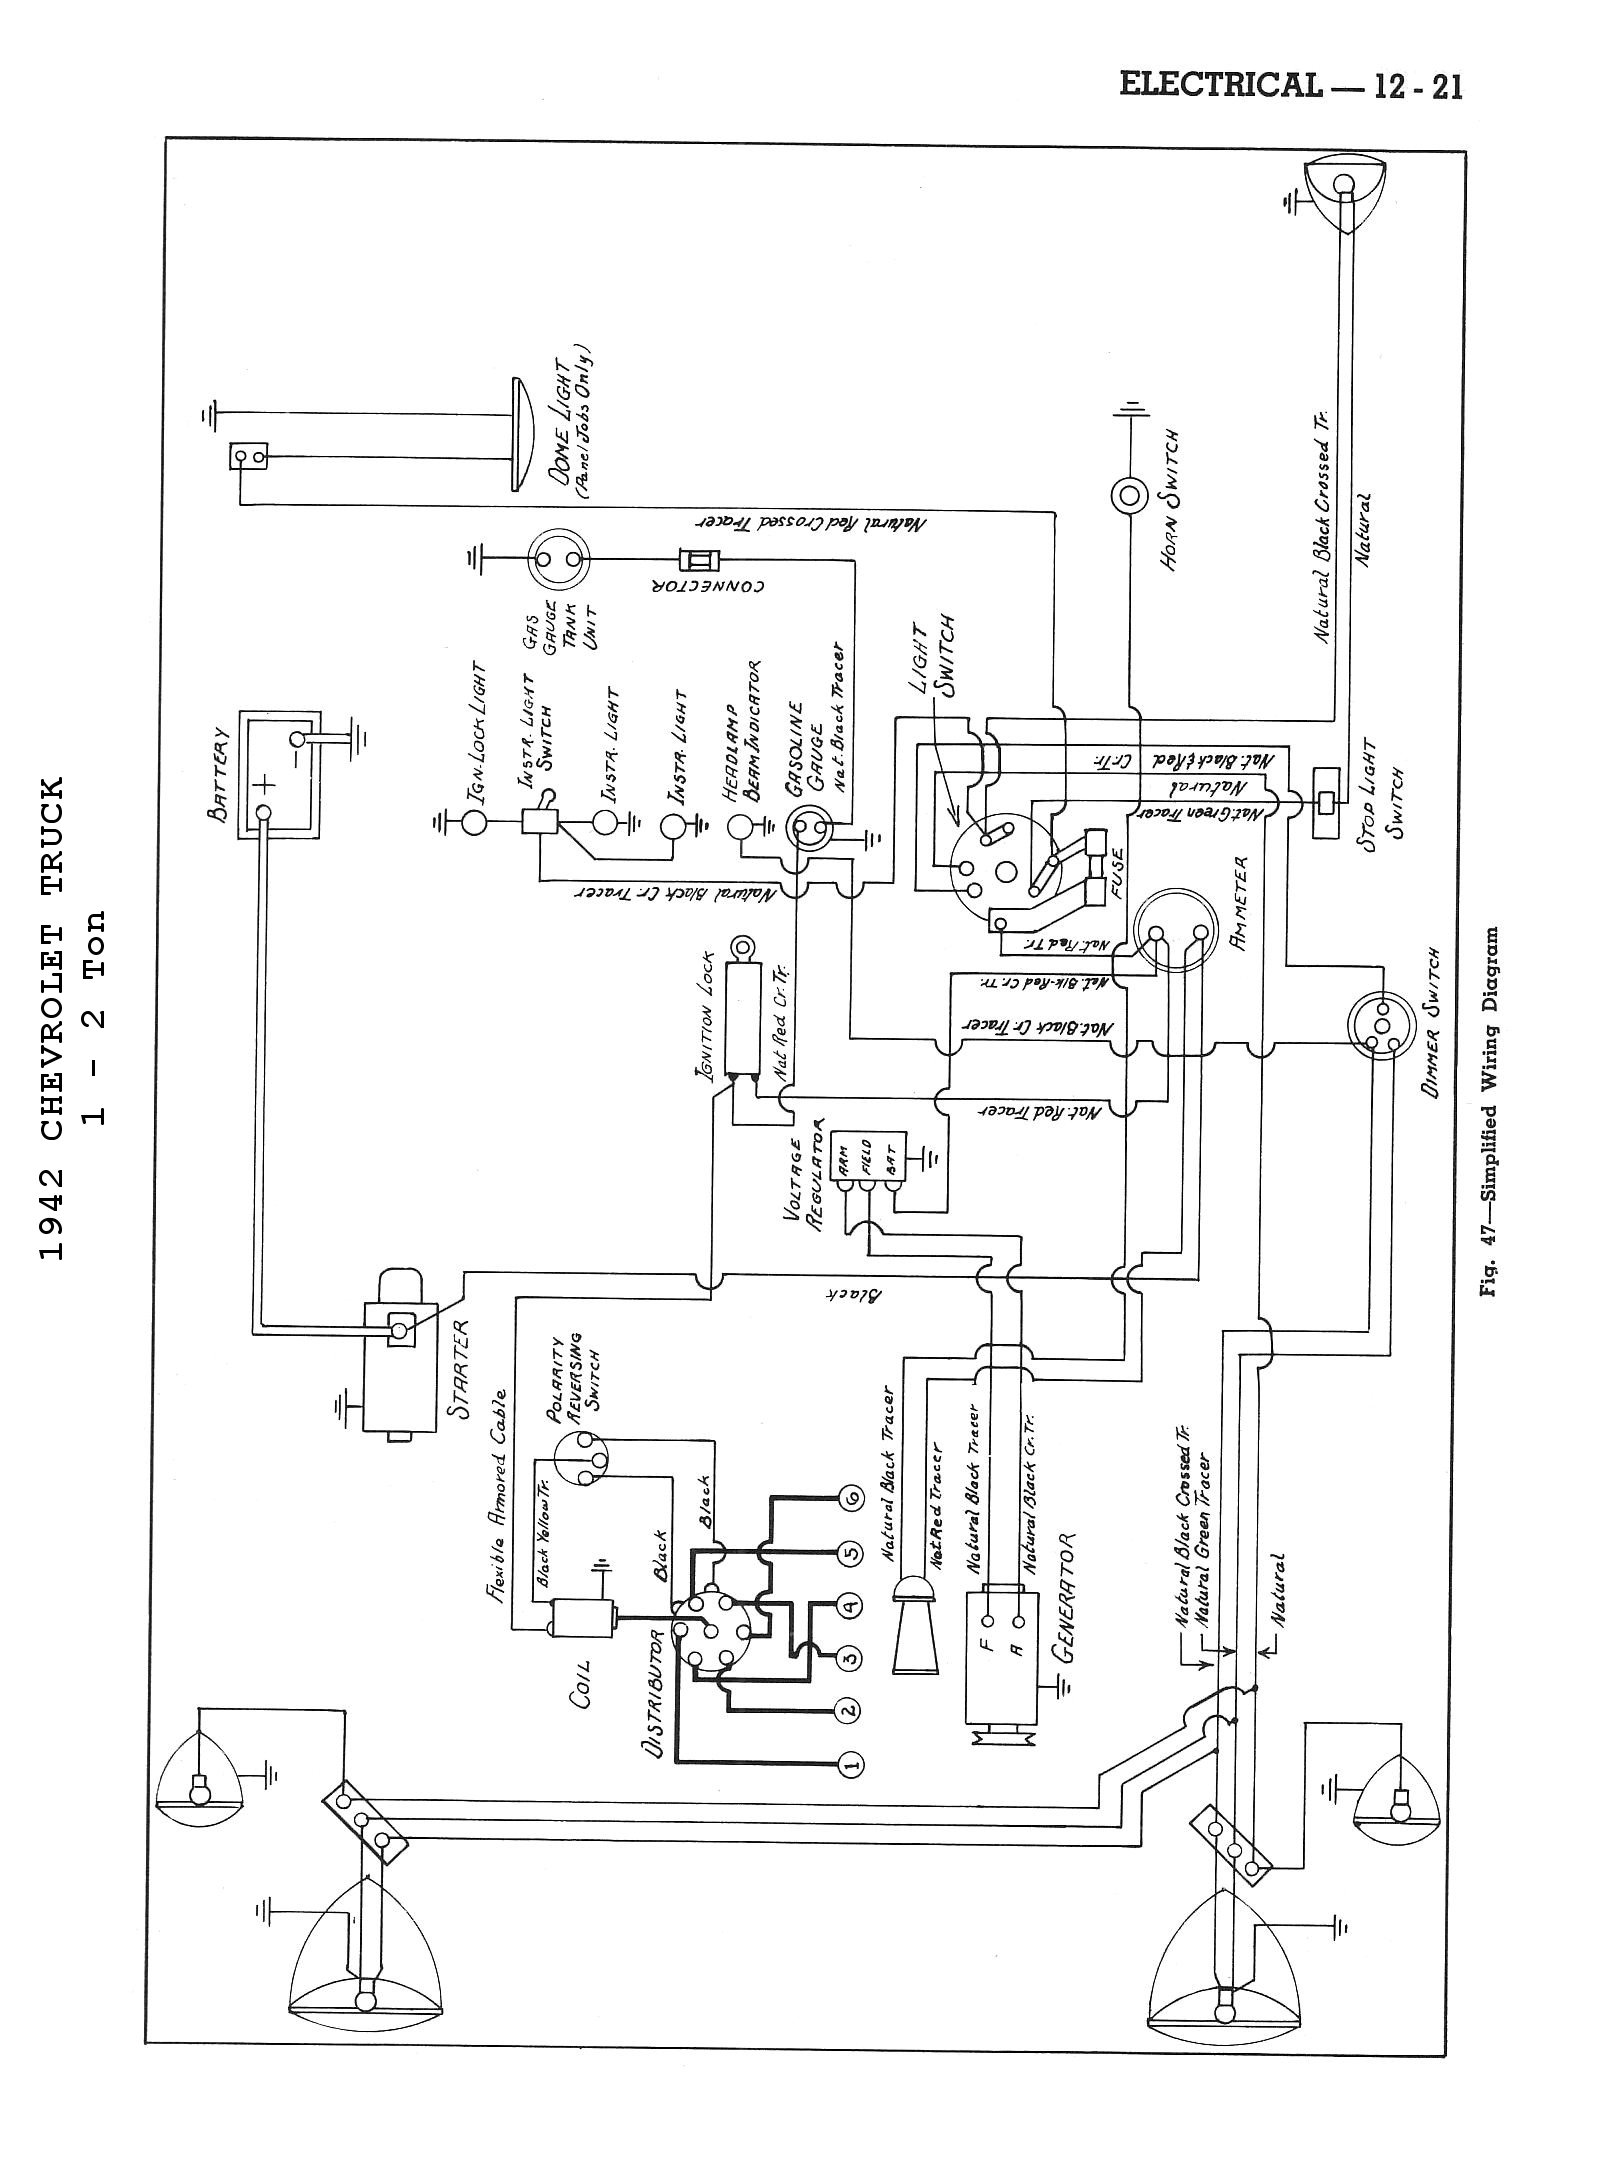 Wiring on john deere riding lawn mower wiring diagram 1999